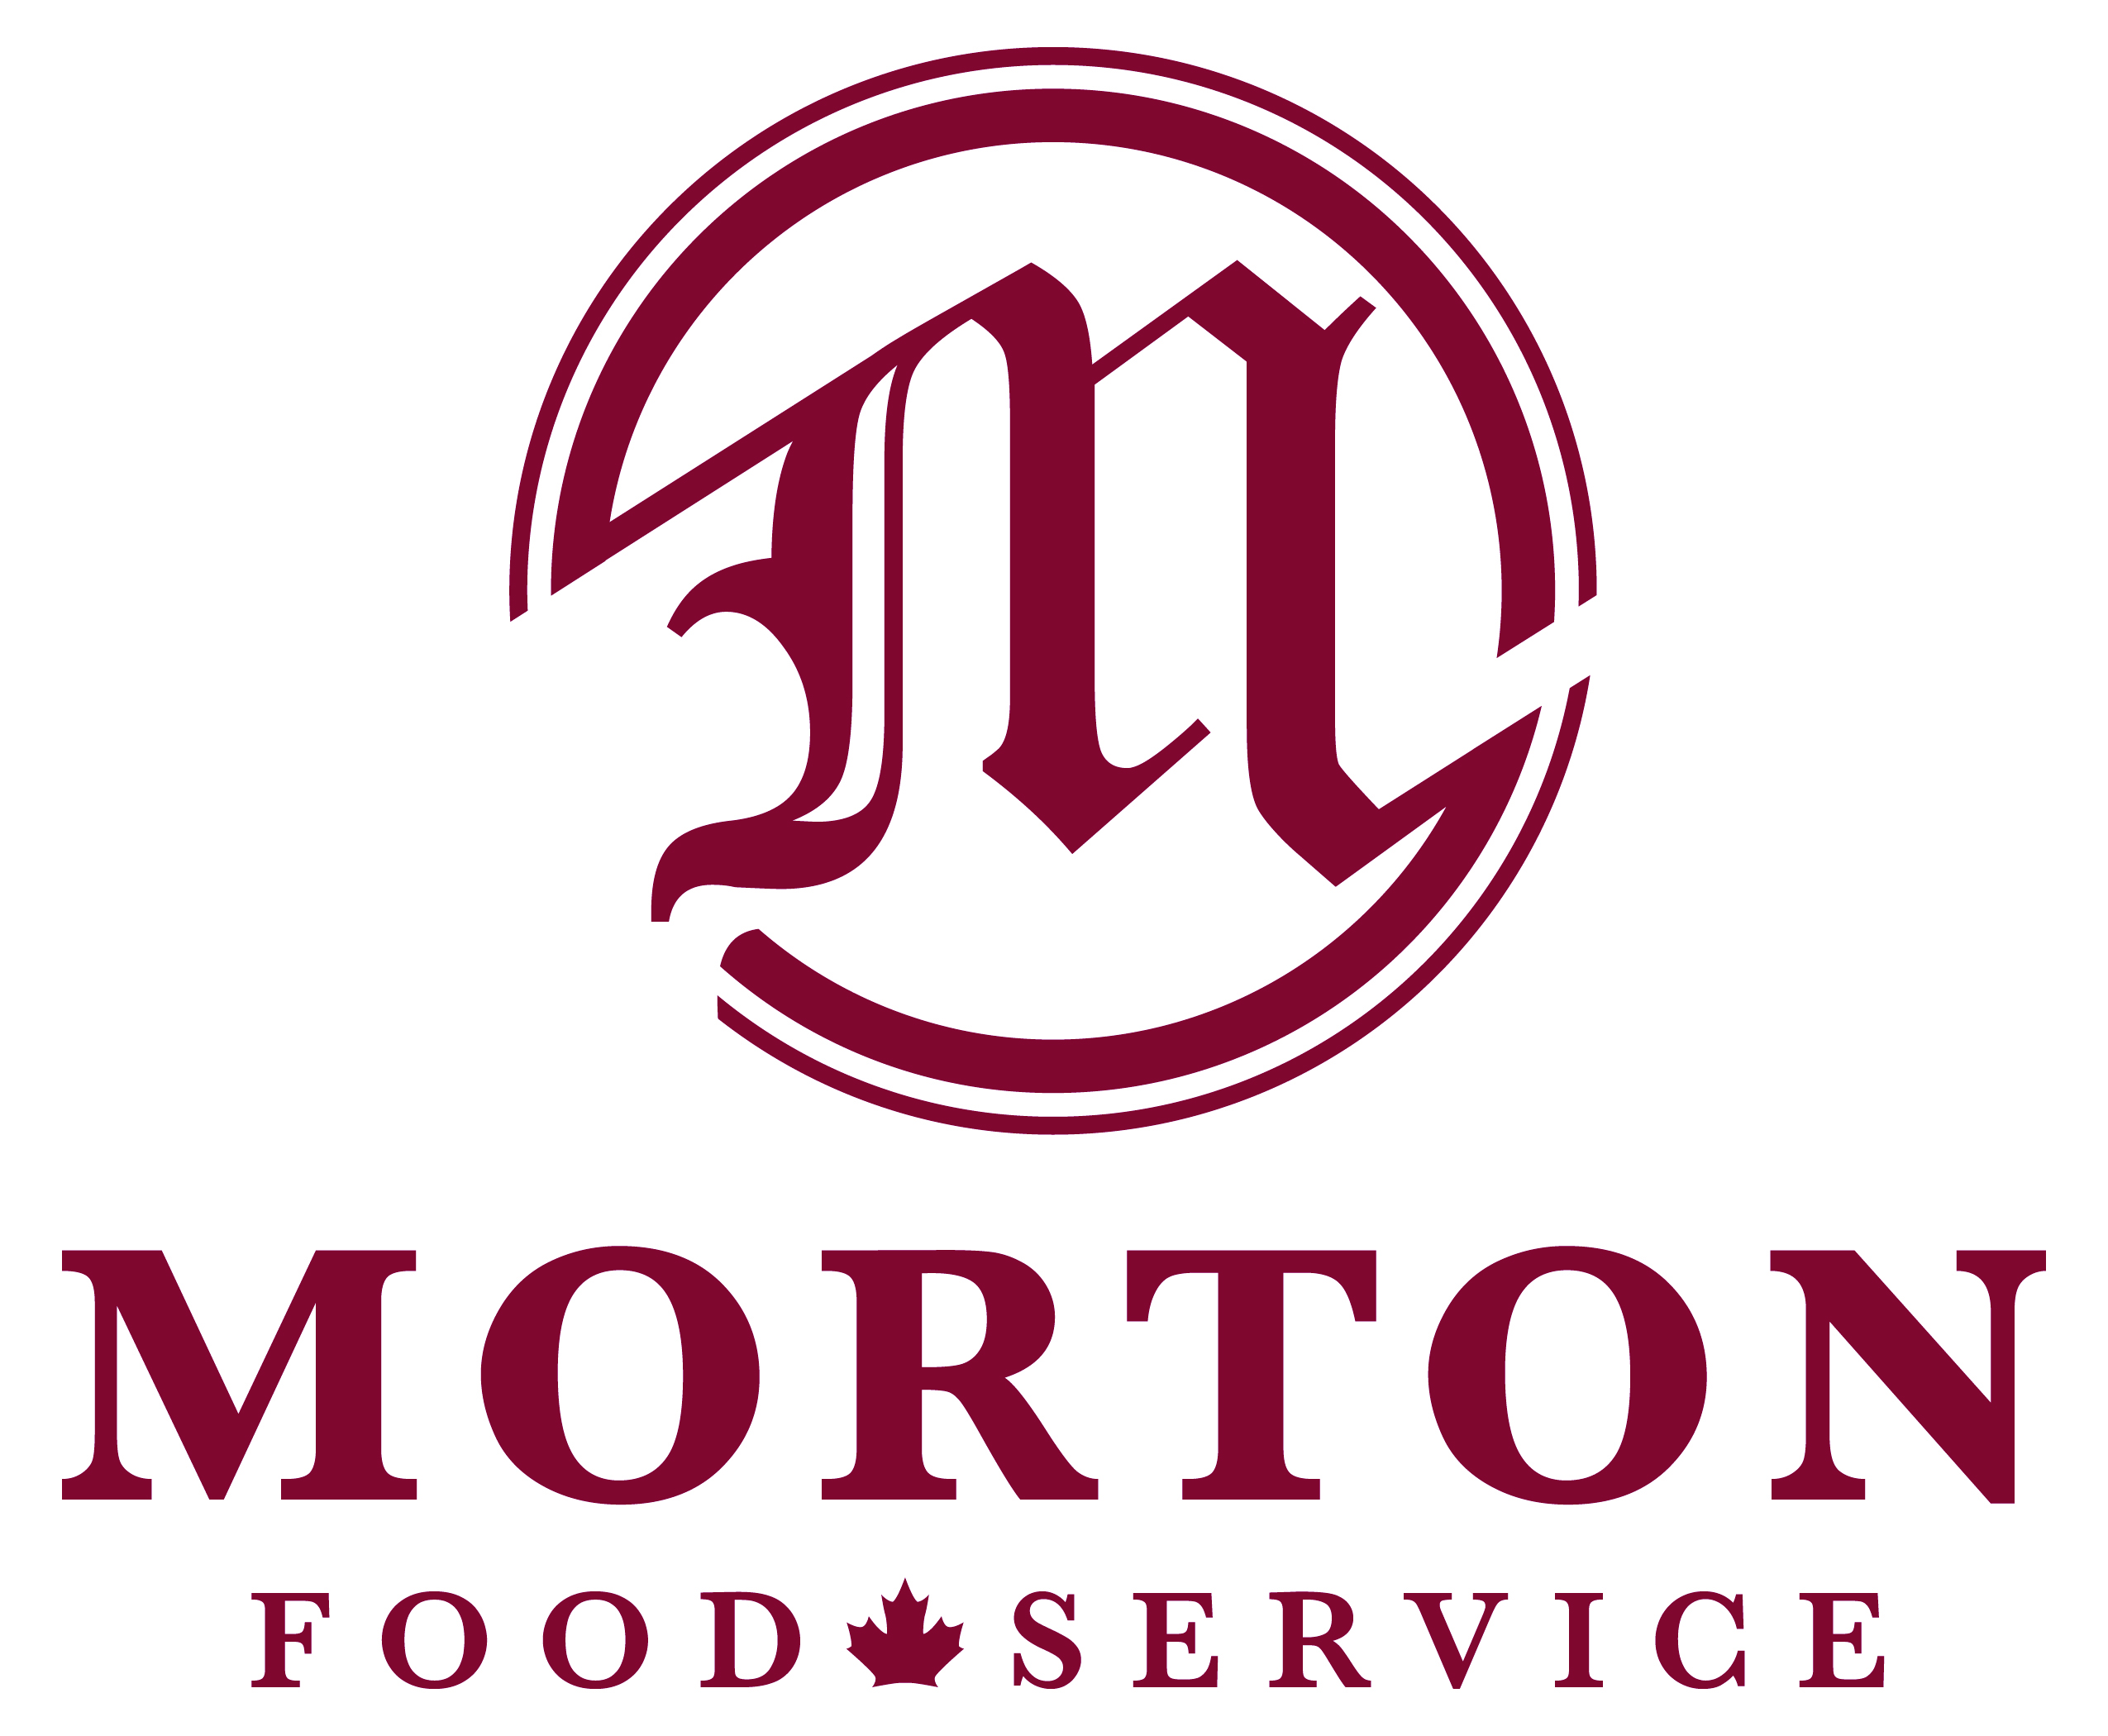 Morton Food Service logo